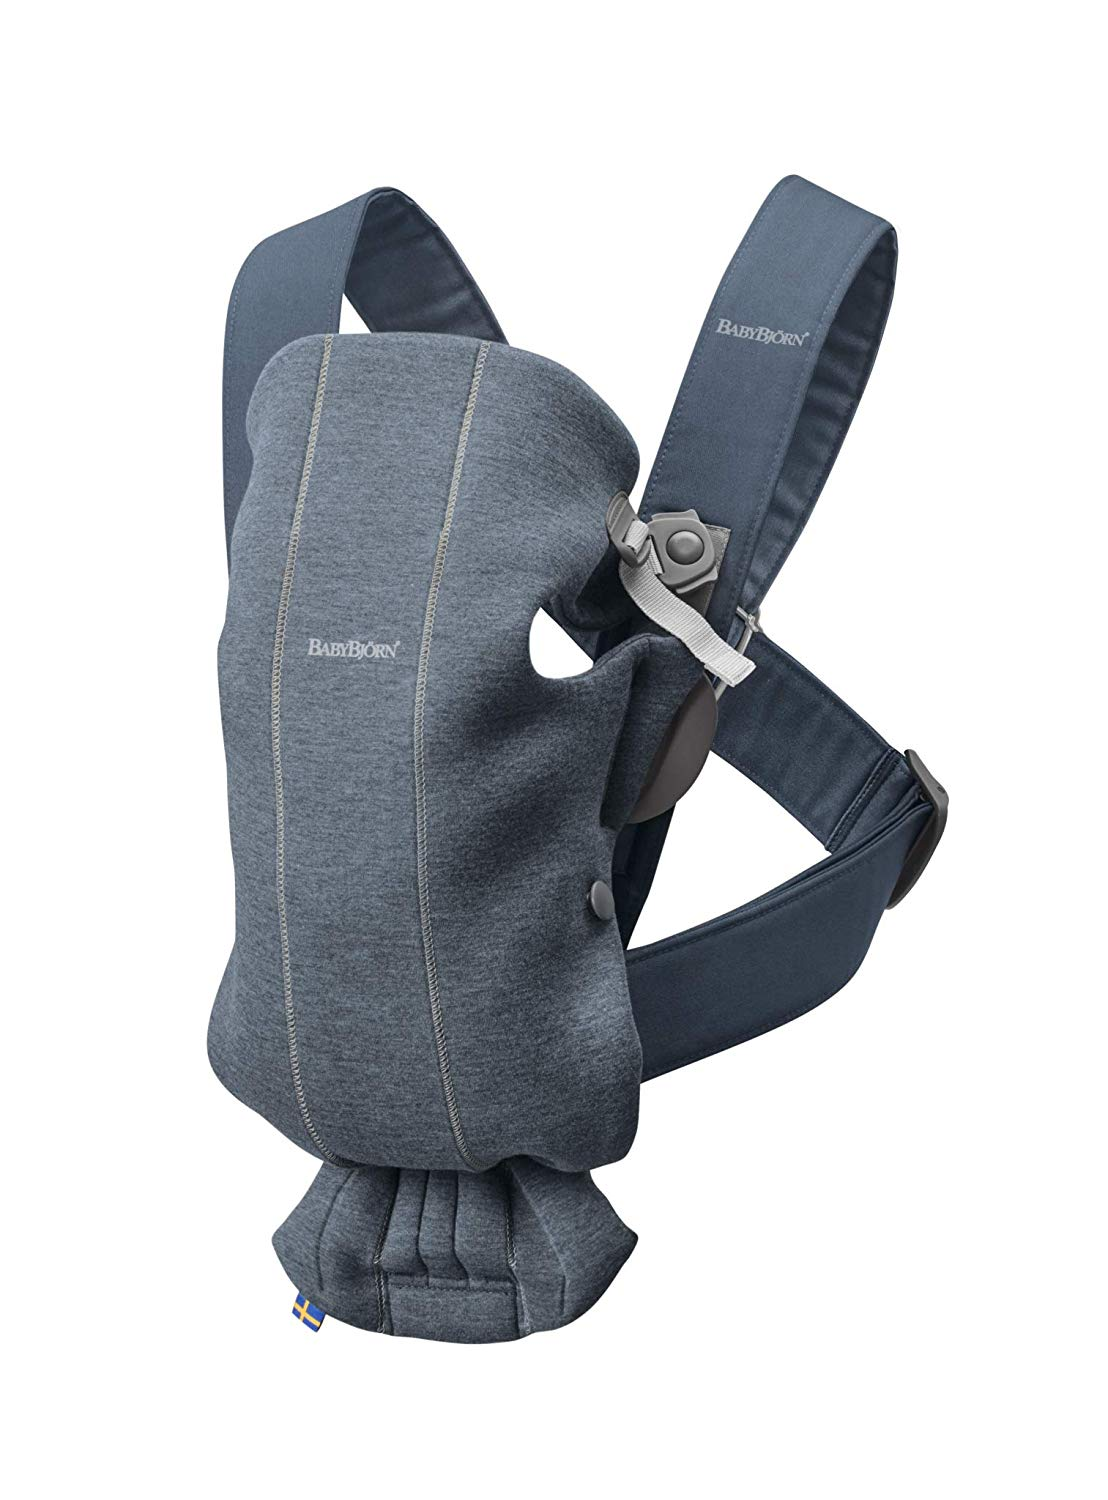 Baby Bjorn Mini Carrier in Dove Blue 3D Jersey Fabric